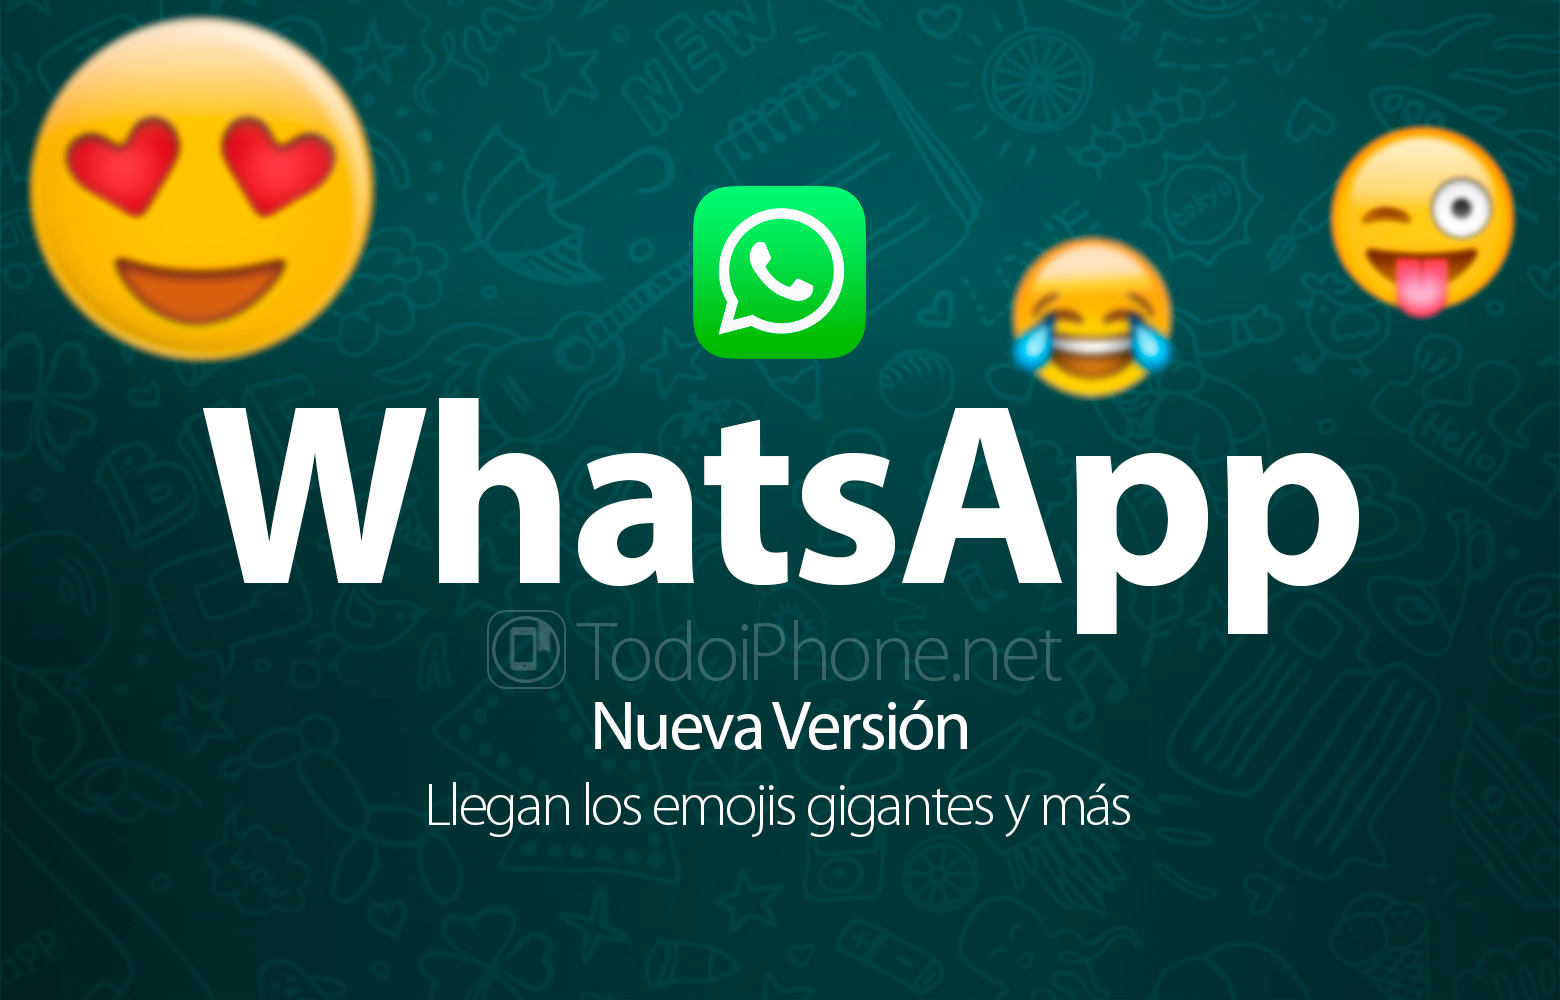 whatsapp-nueva-version-emojis-grandes